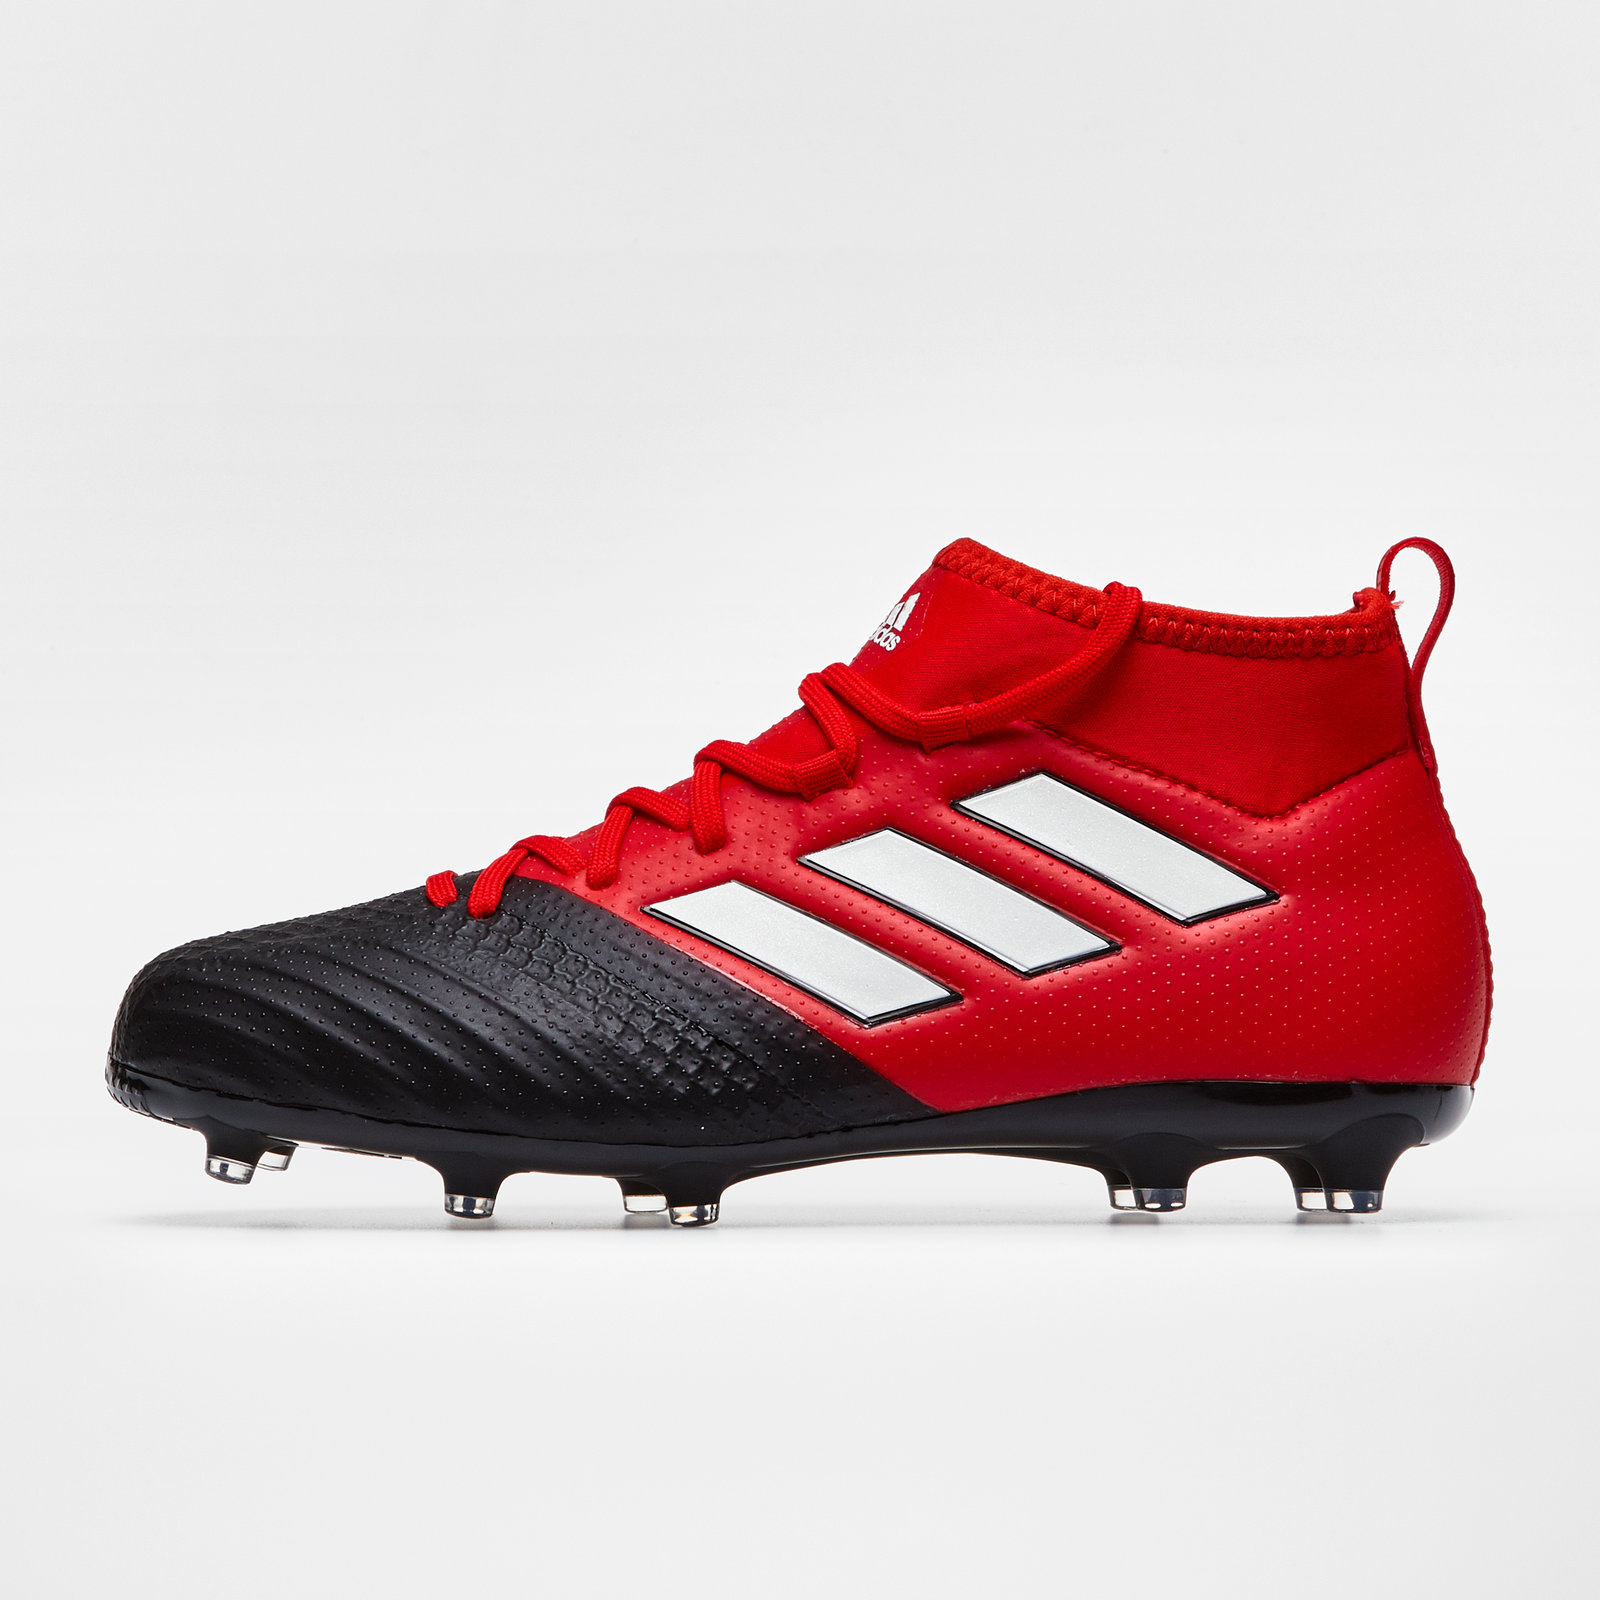 Image of Ace 17.1 FG Kids Football Boots